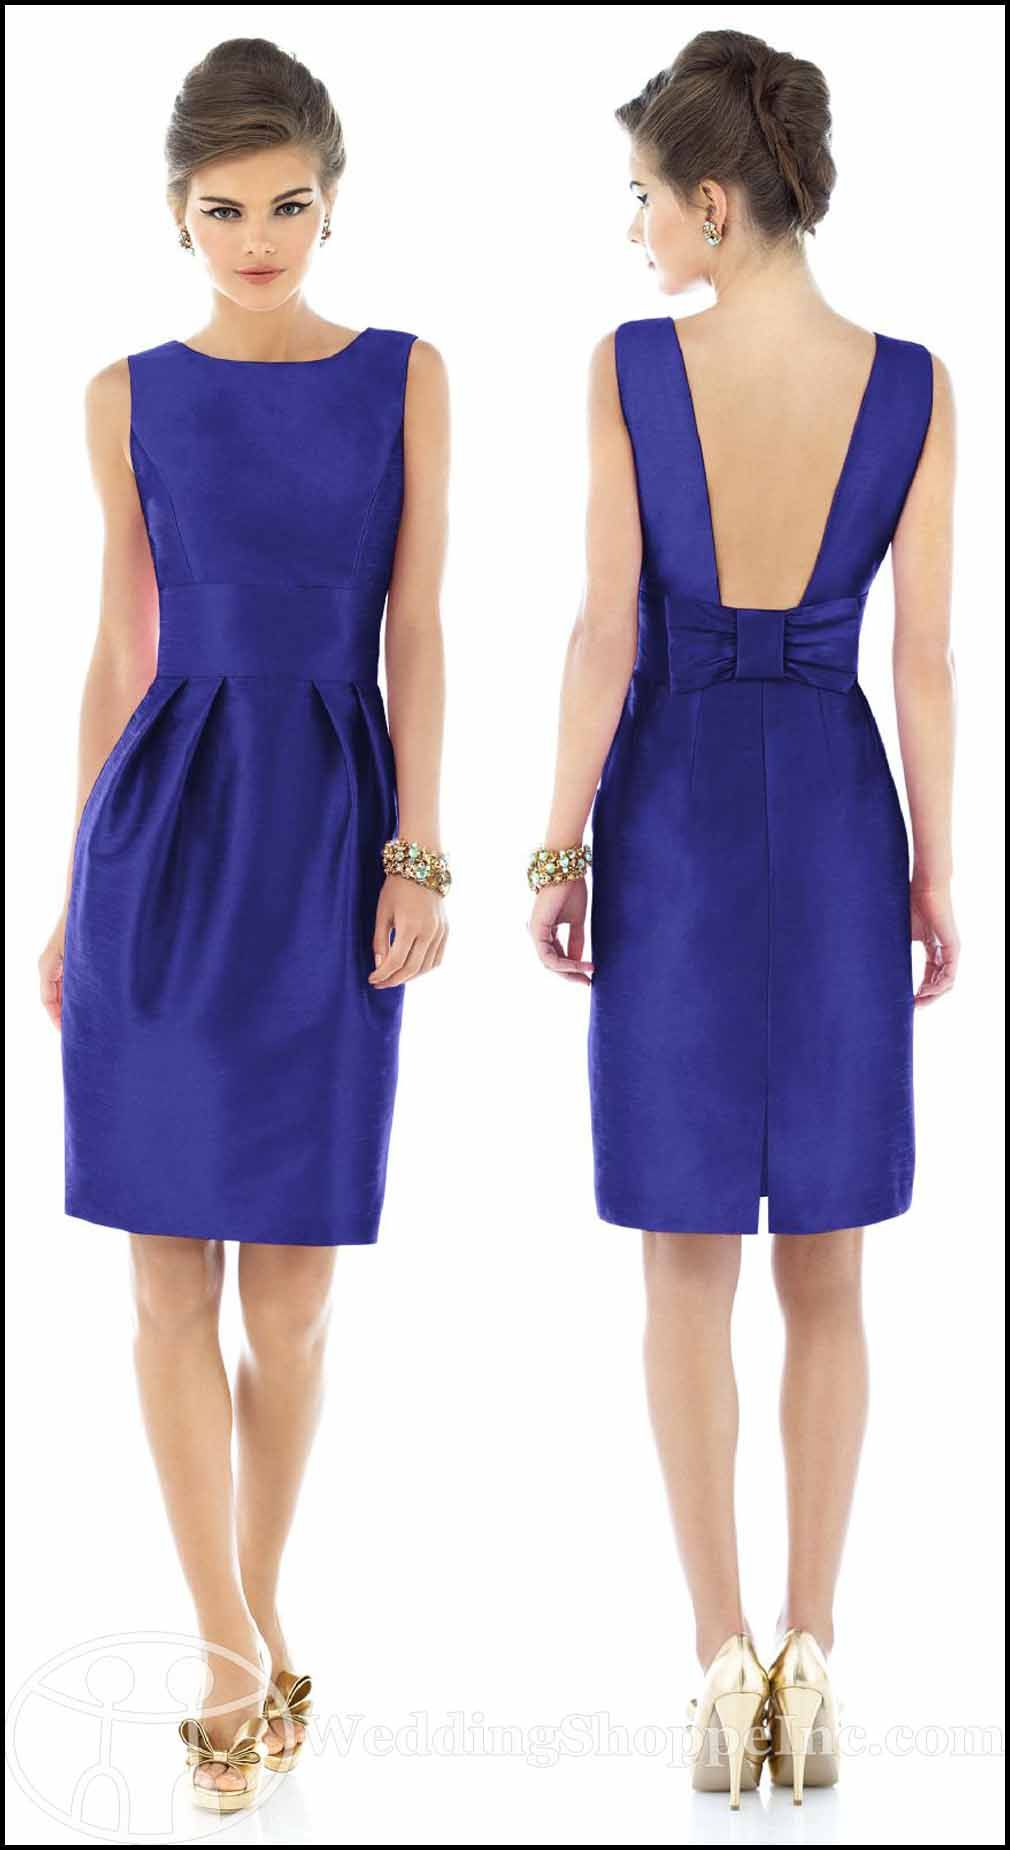 Alfred sung real bridesmaids google search like the shape of the super cute alfred sung dress for the dress you really can wear again as proof some of the b ella girls themselves own this dress ombrellifo Gallery